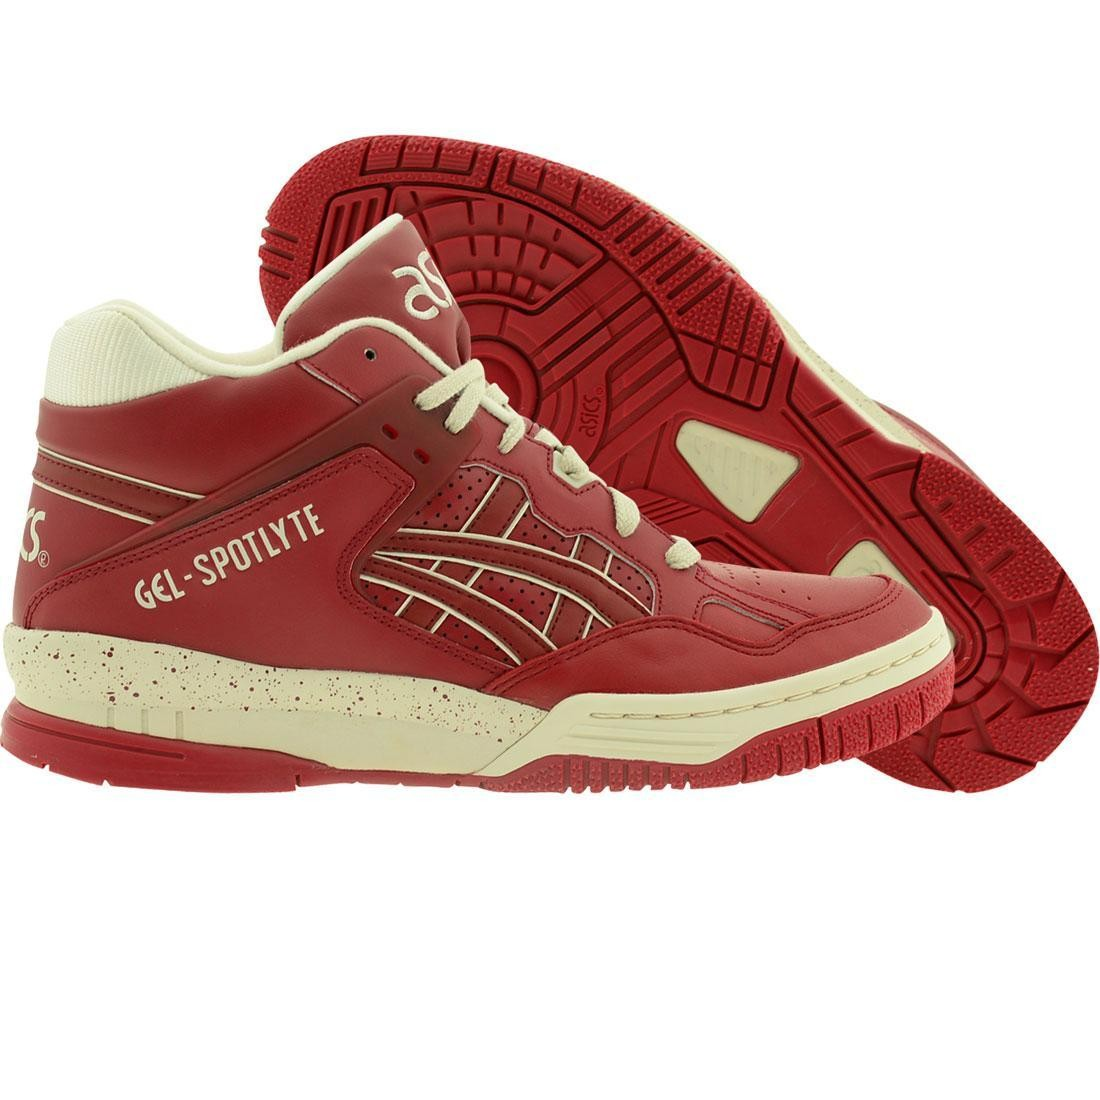 Asics Tiger Men Gel-Spotlyte (burgundy)